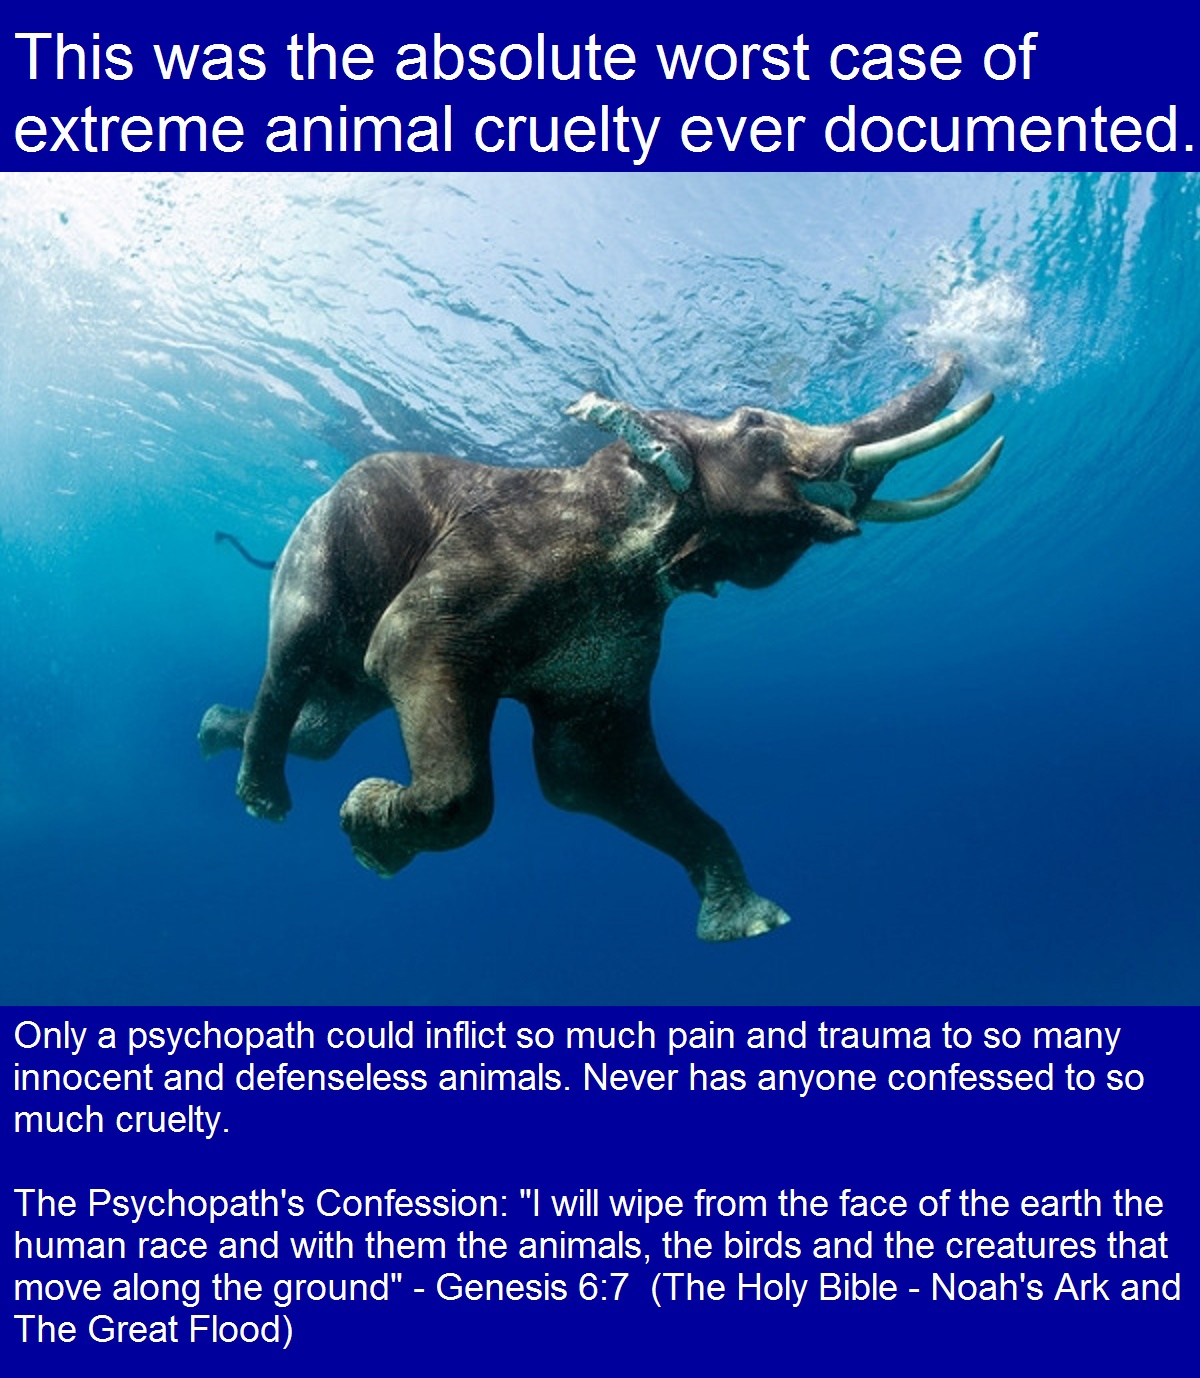 This was the absolute worst case of extreme animal cruelty ever documented.